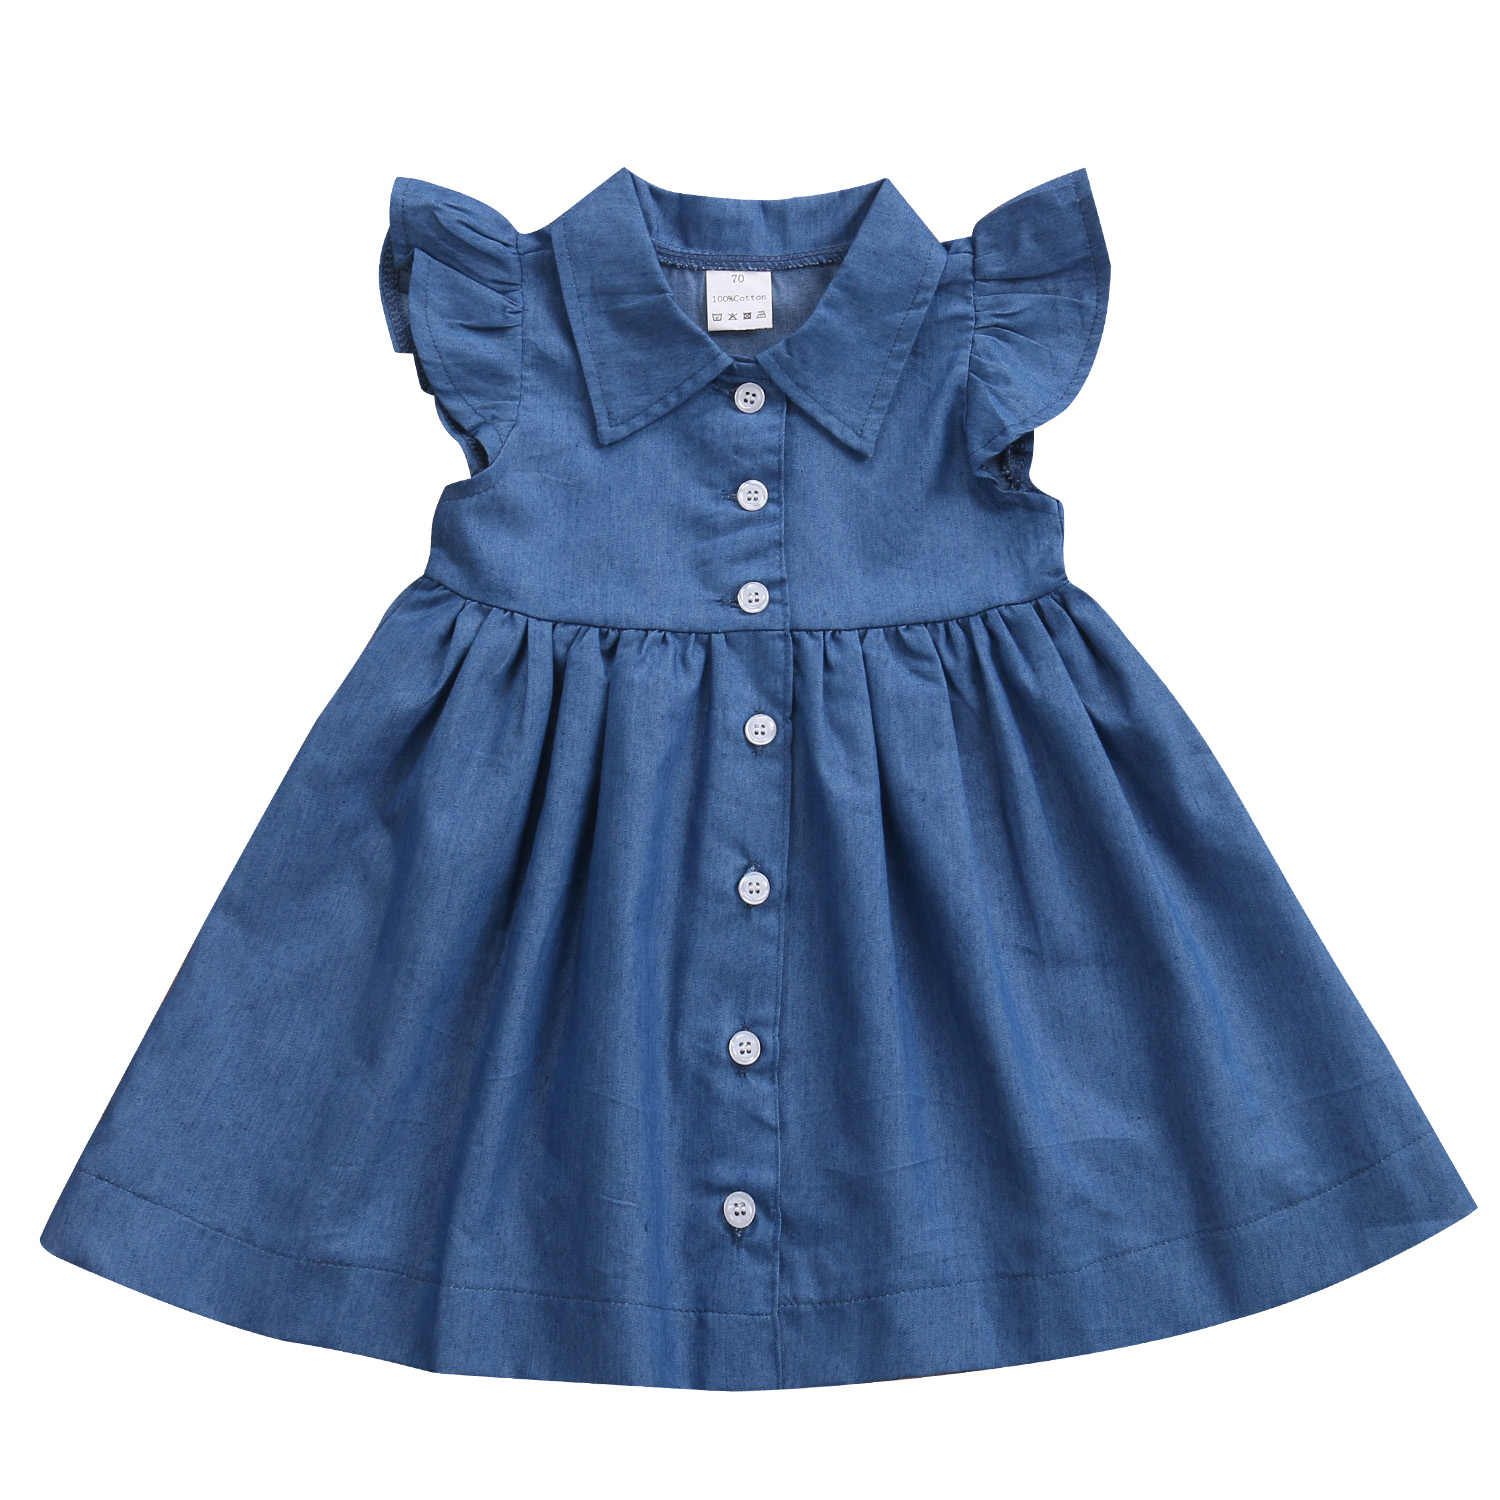 0846f52735 baby girl denim dress Toddler Baby Kids Girls Denim Princess Summer  Sundress Party casual fashion Dress